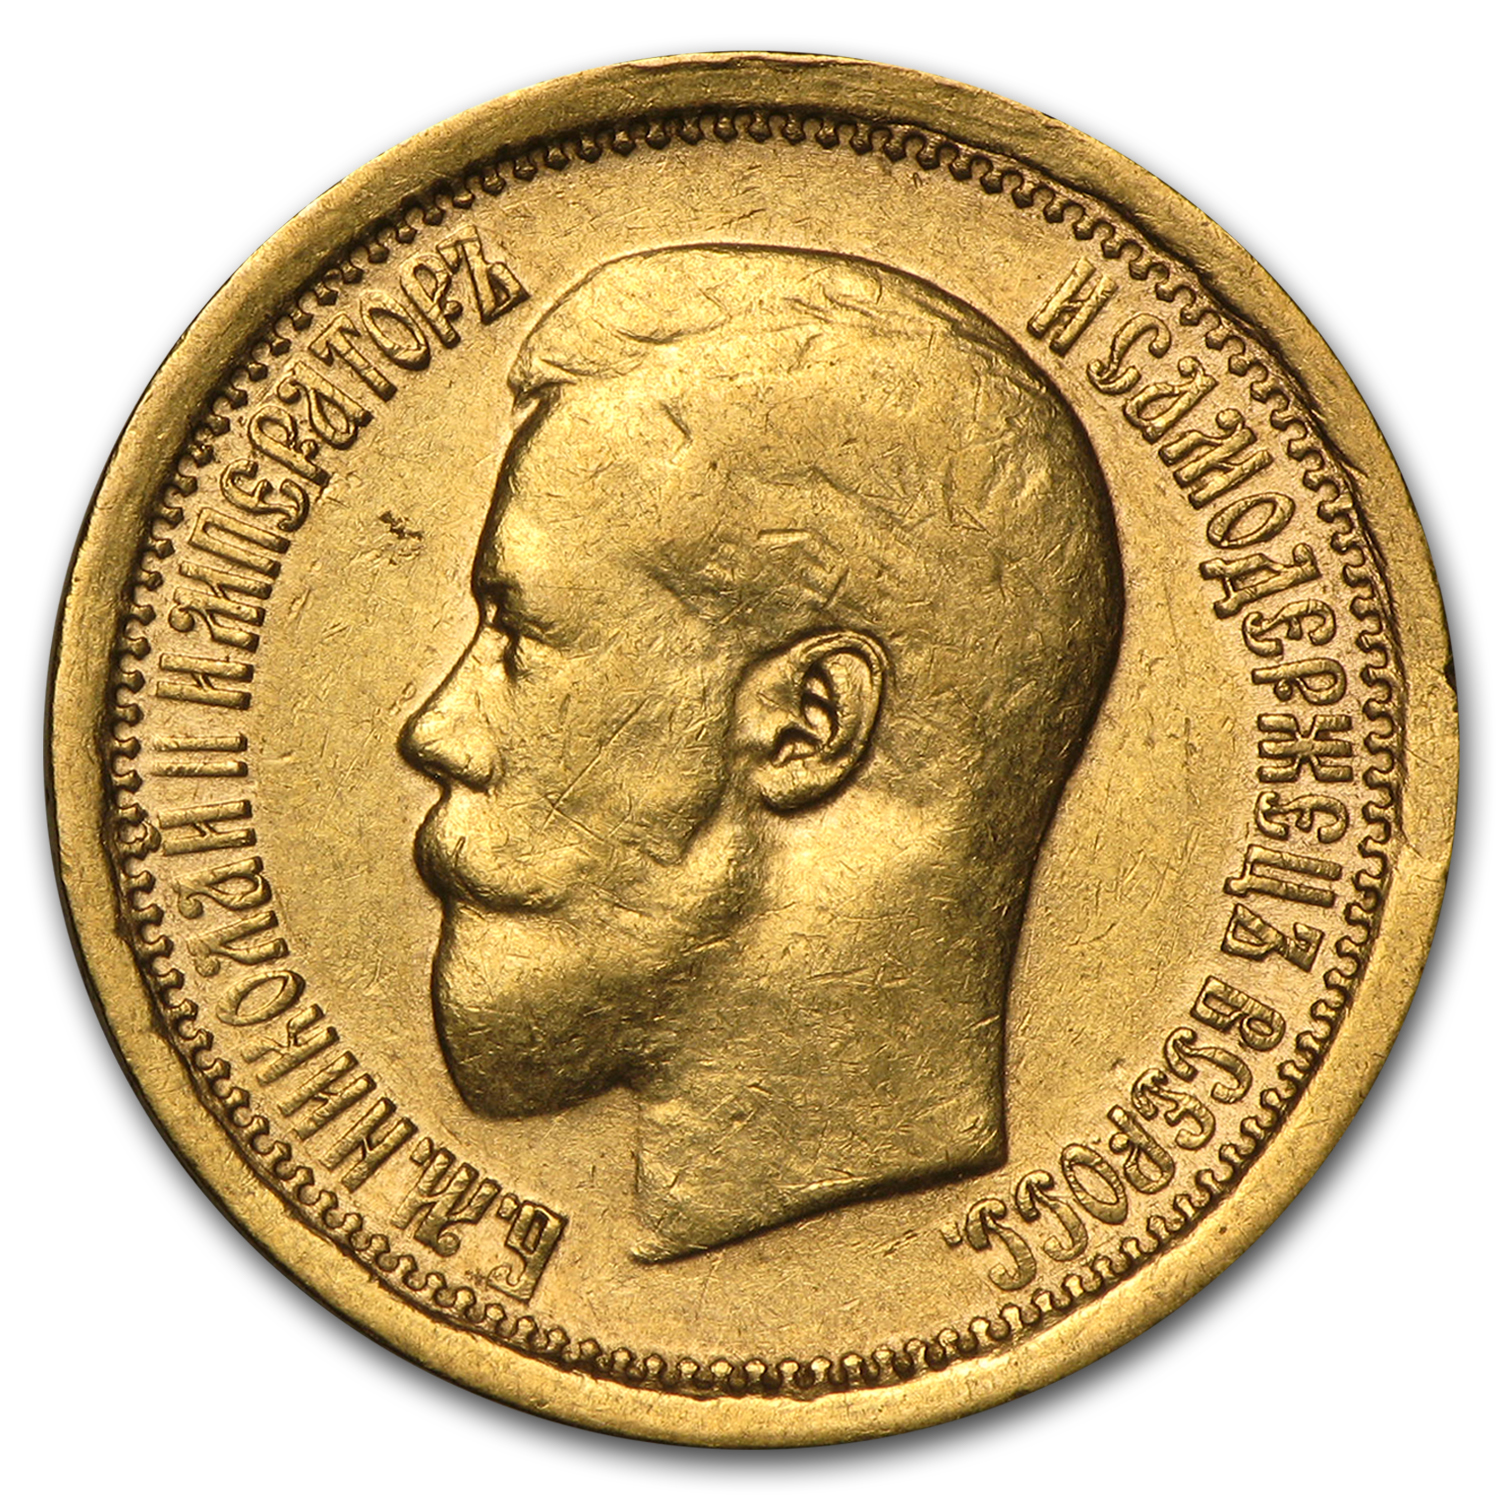 1897 Russia Gold 7 Roubles/50 Kopeks VF